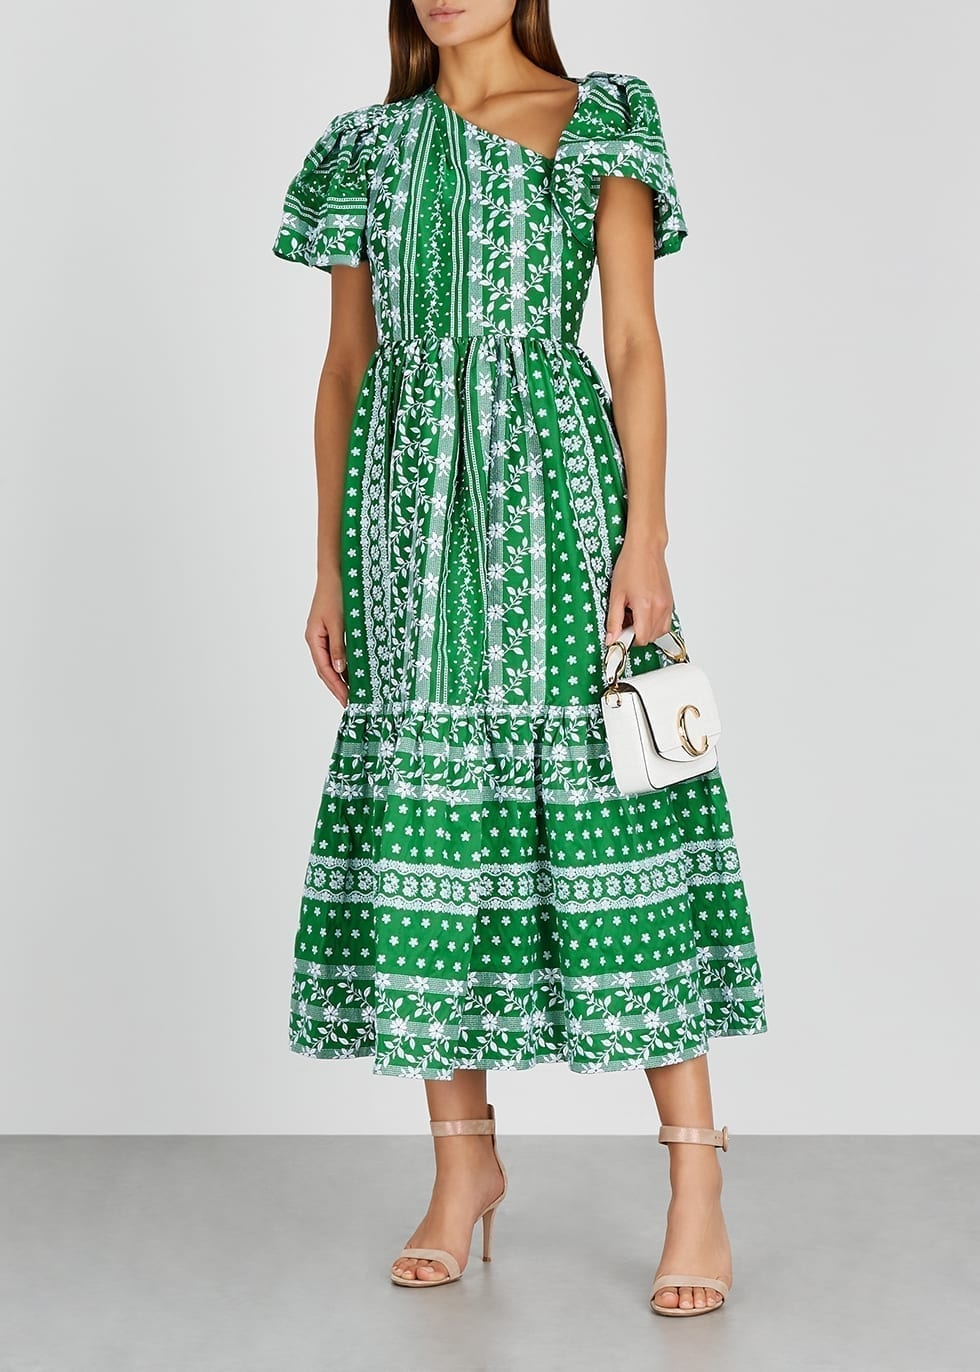 ERDEM Palomina Green Floral-embroidered Midi Dress